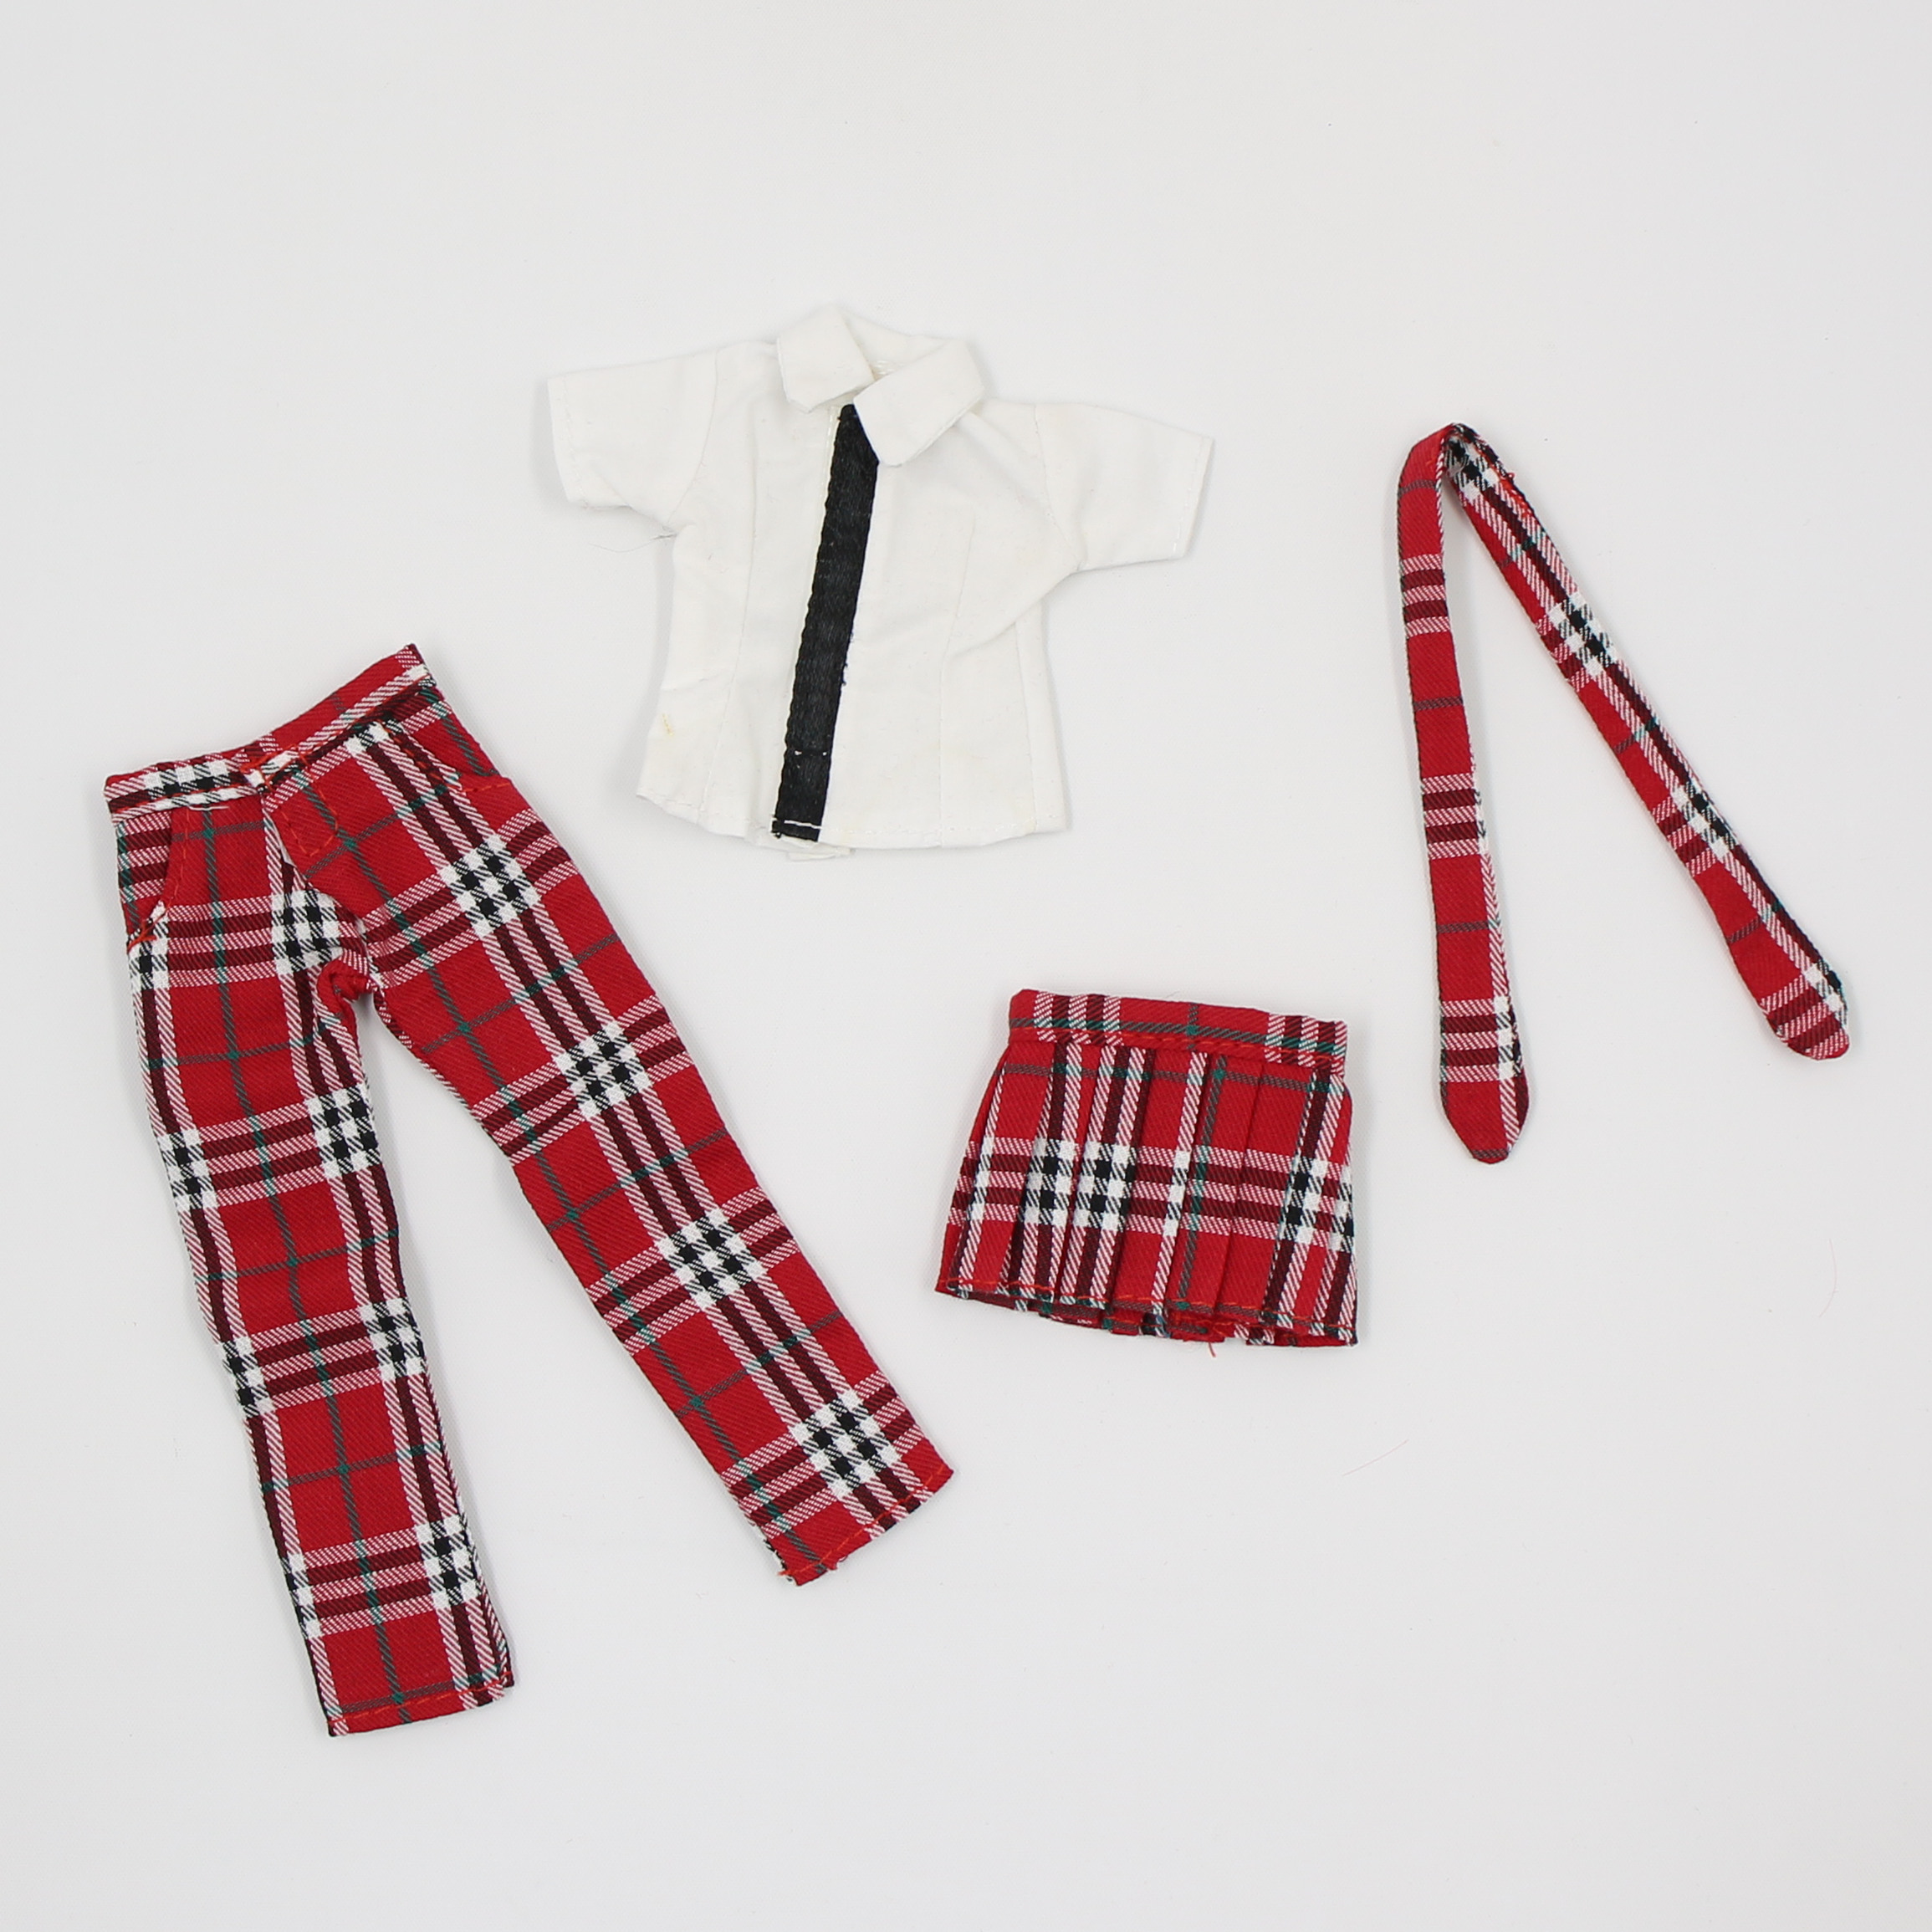 blyth doll icy licca Red Plaid Uniform skirt pants suit clothes gift toy(China)